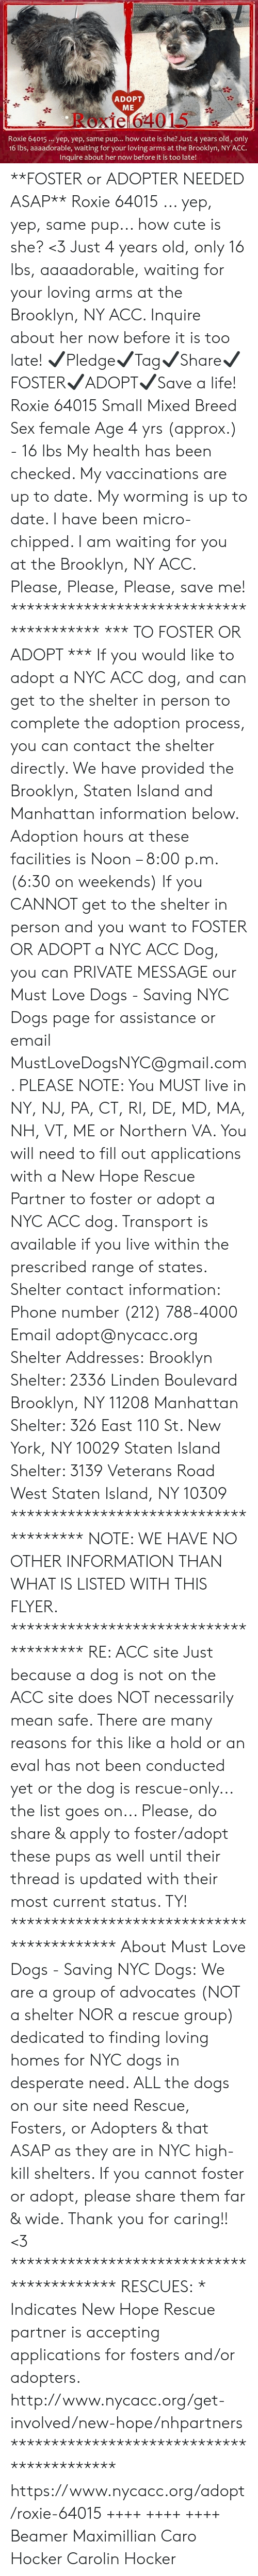 Cute, Desperate, and Dogs: ADOPT  ME  Roxie 64015  Roxie 64015.. yep, yep, same pup... how cute is she? Just 4 years old, only  16 lbs, aaaadorable, waiting for your loving arms at the Brooklyn, NY ACC.  Inquire about her now before it is too late! **FOSTER or ADOPTER NEEDED ASAP** Roxie 64015 ... yep, yep, same pup... how cute is she? <3 Just 4 years old, only 16 lbs, aaaadorable, waiting for your loving arms at the Brooklyn, NY ACC. Inquire about her now before it is too late!  ✔Pledge✔Tag✔Share✔FOSTER✔ADOPT✔Save a life!  Roxie 64015 Small Mixed Breed Sex female Age 4 yrs (approx.) - 16 lbs  My health has been checked.  My vaccinations are up to date. My worming is up to date.  I have been micro-chipped.   I am waiting for you at the Brooklyn, NY ACC. Please, Please, Please, save me!  **************************************** *** TO FOSTER OR ADOPT ***   If you would like to adopt a NYC ACC dog, and can get to the shelter in person to complete the adoption process, you can contact the shelter directly. We have provided the Brooklyn, Staten Island and Manhattan information below. Adoption hours at these facilities is Noon – 8:00 p.m. (6:30 on weekends)  If you CANNOT get to the shelter in person and you want to FOSTER OR ADOPT a NYC ACC Dog, you can PRIVATE MESSAGE our Must Love Dogs - Saving NYC Dogs page for assistance or email MustLoveDogsNYC@gmail.com.   PLEASE NOTE: You MUST live in NY, NJ, PA, CT, RI, DE, MD, MA, NH, VT, ME or Northern VA. You will need to fill out applications with a New Hope Rescue Partner to foster or adopt a NYC ACC dog. Transport is available if you live within the prescribed range of states.  Shelter contact information: Phone number (212) 788-4000 Email adopt@nycacc.org  Shelter Addresses: Brooklyn Shelter: 2336 Linden Boulevard Brooklyn, NY 11208 Manhattan Shelter: 326 East 110 St. New York, NY 10029 Staten Island Shelter: 3139 Veterans Road West Staten Island, NY 10309 **************************************  NOTE: WE HAVE NO OTHER INF